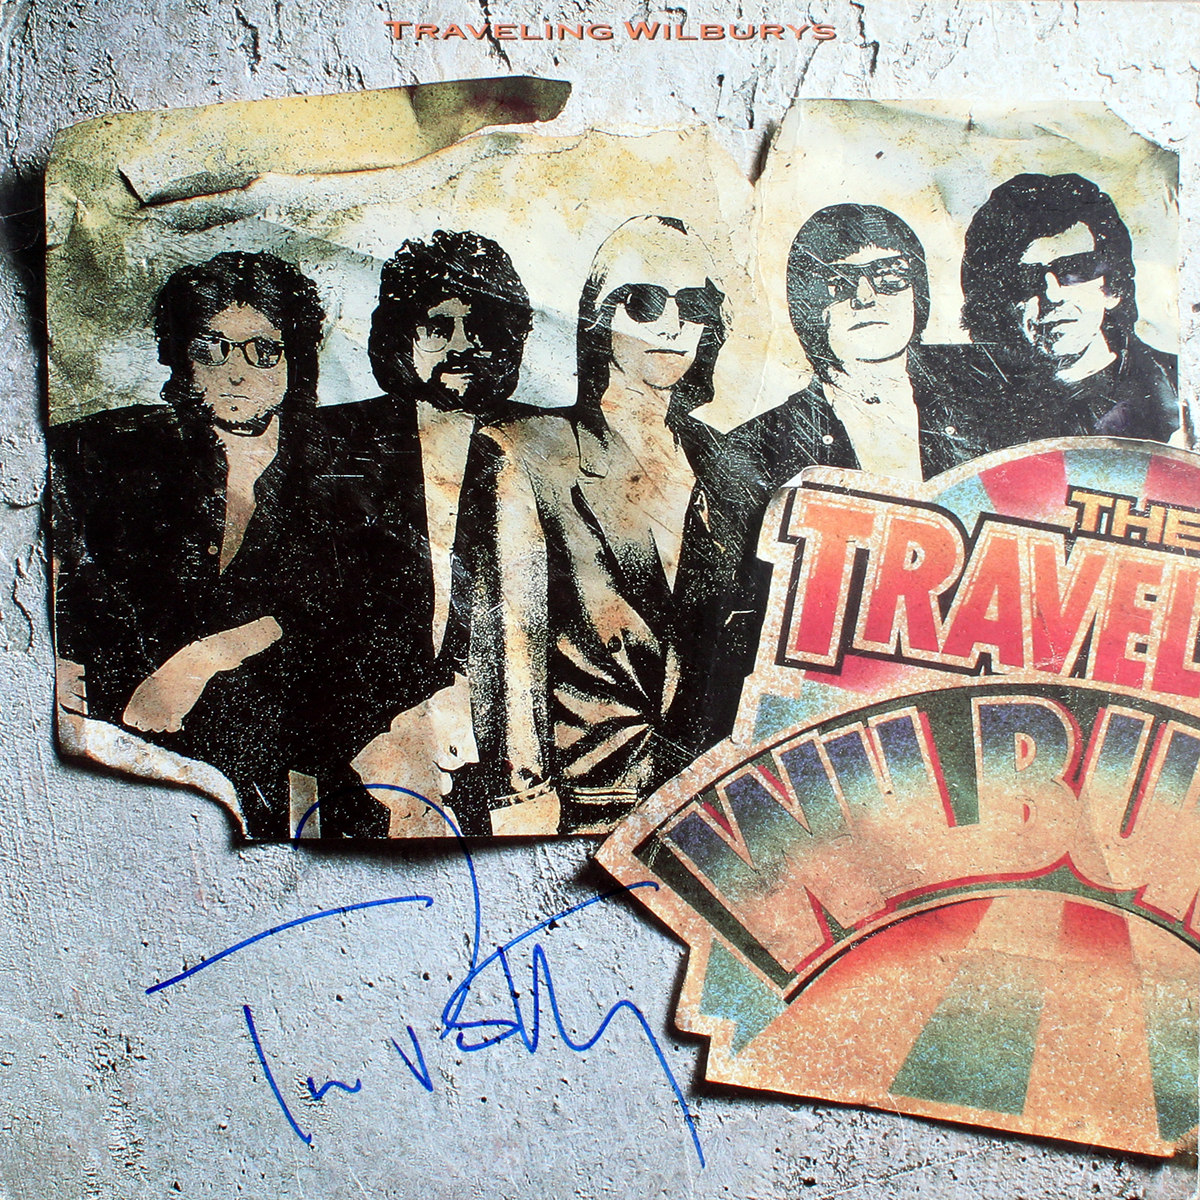 Traveling Wilburys LP #1